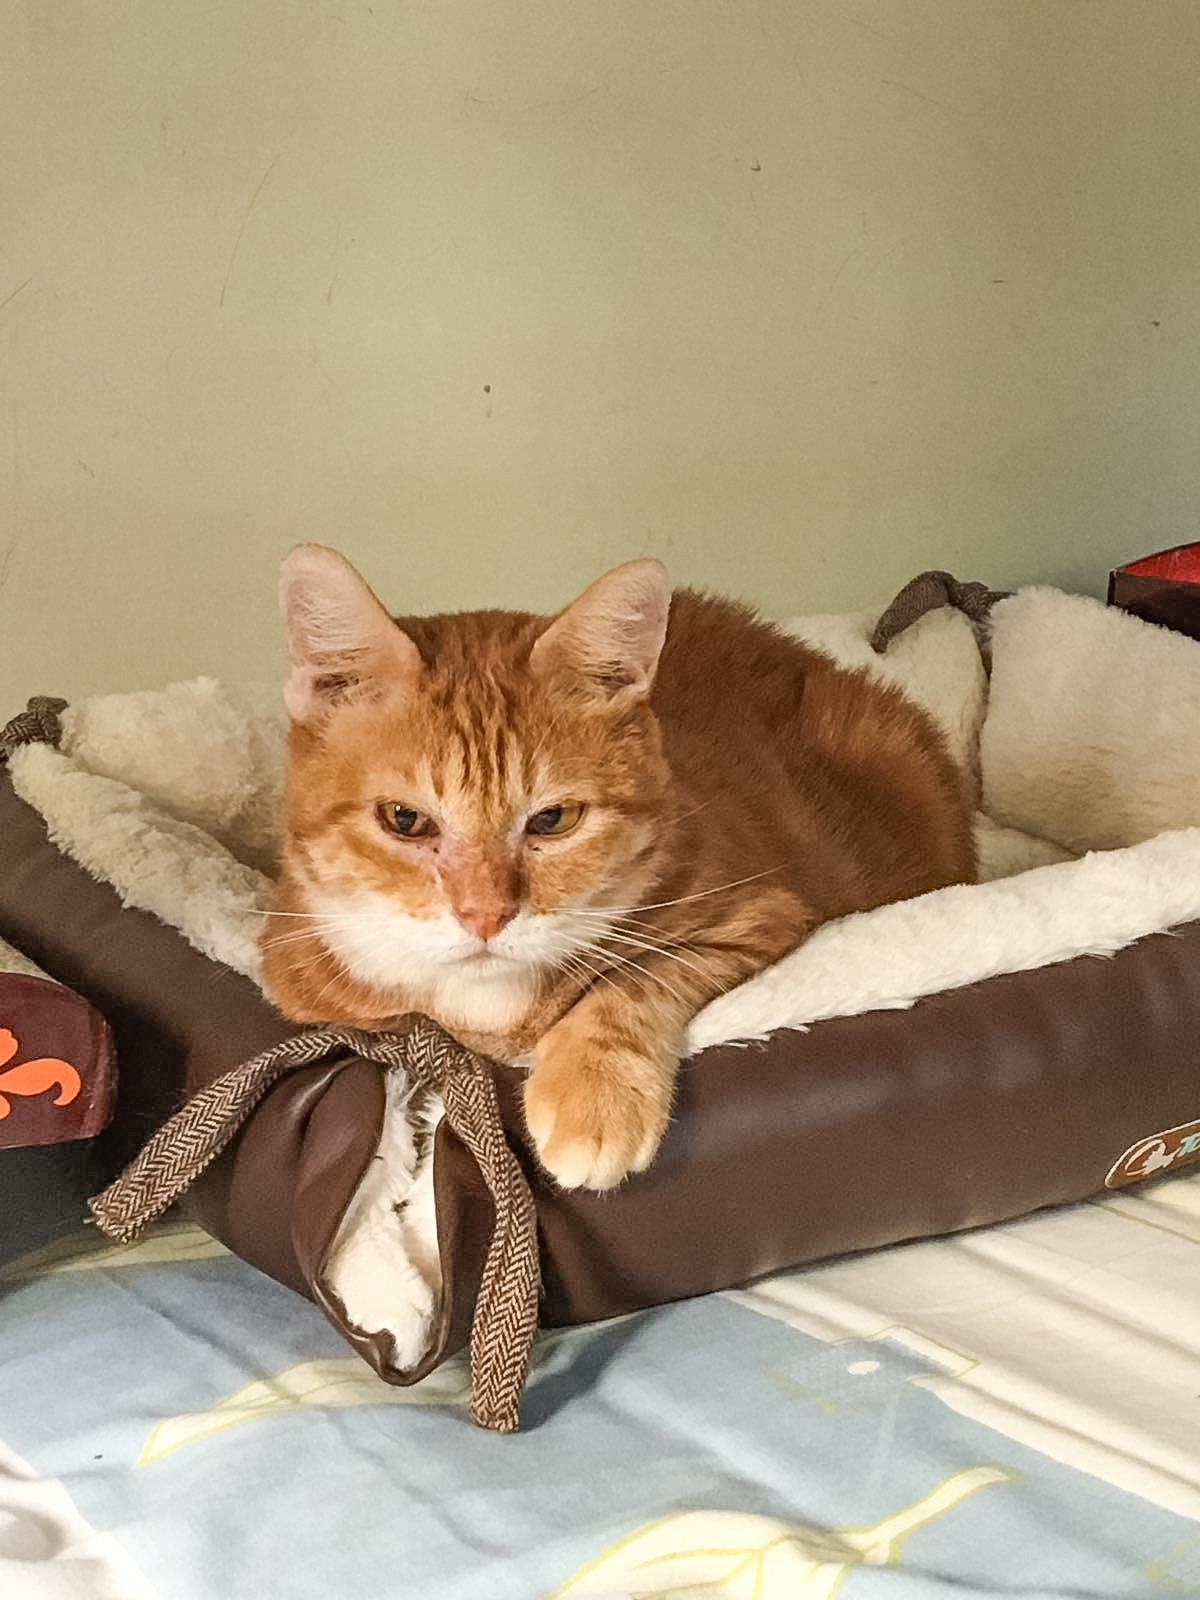 Why does not a cat like to sit on their hands, does the cat dislike being ironed